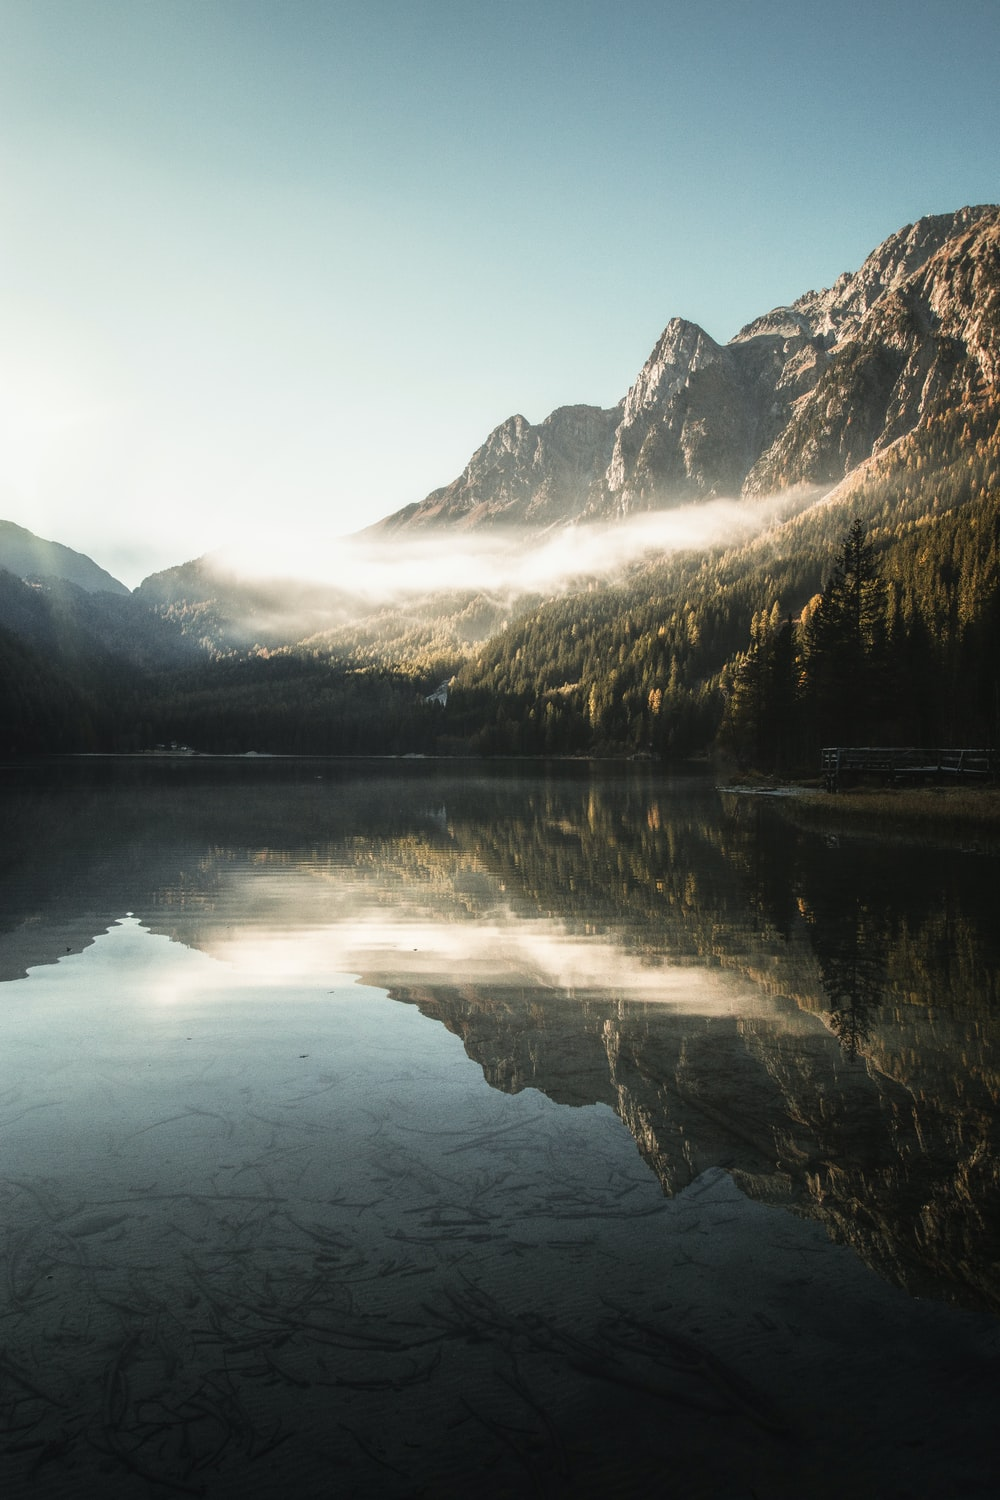 landscape photography of body of water against mountain